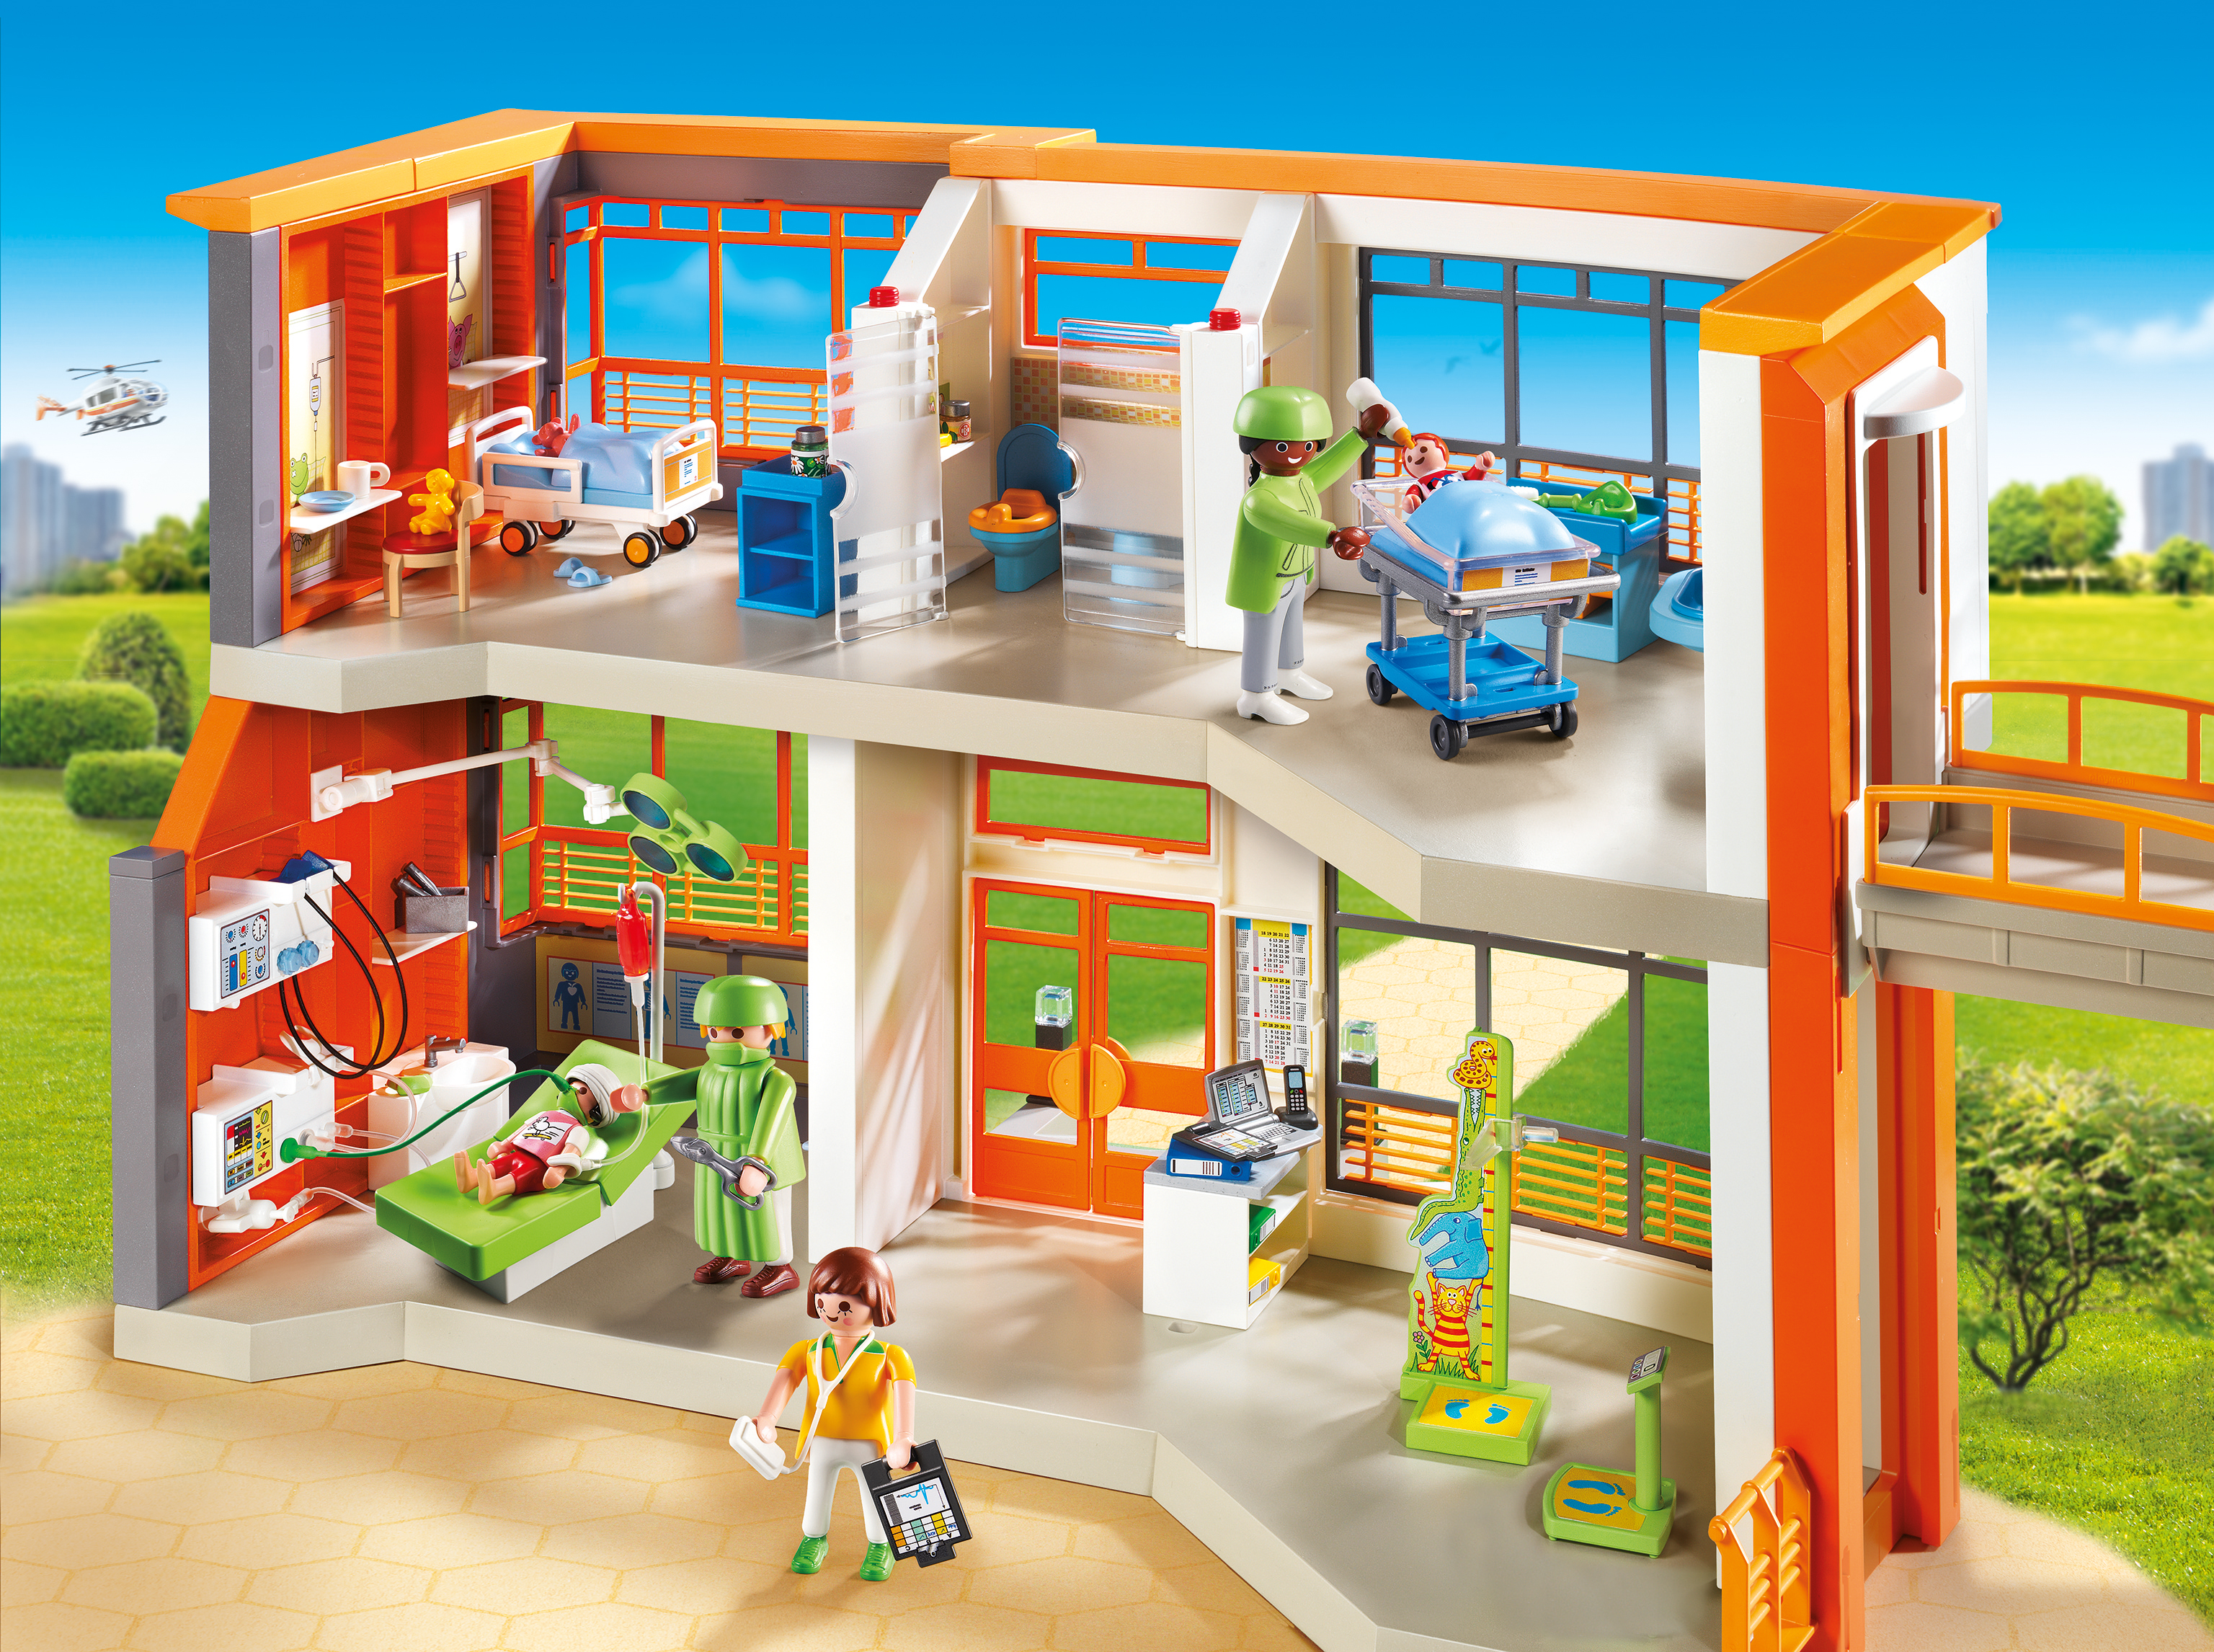 Playmobil furnished children 39 s hospital encourages for Salle de bain villa moderne playmobil